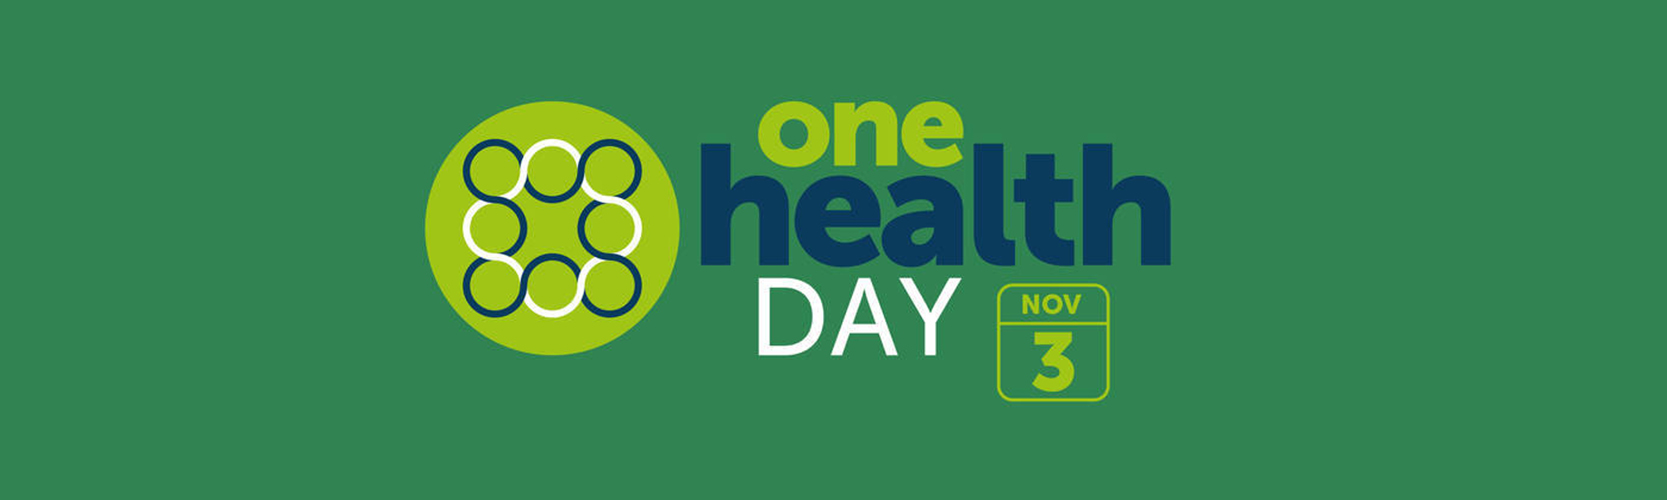 The international One Health Day banner.